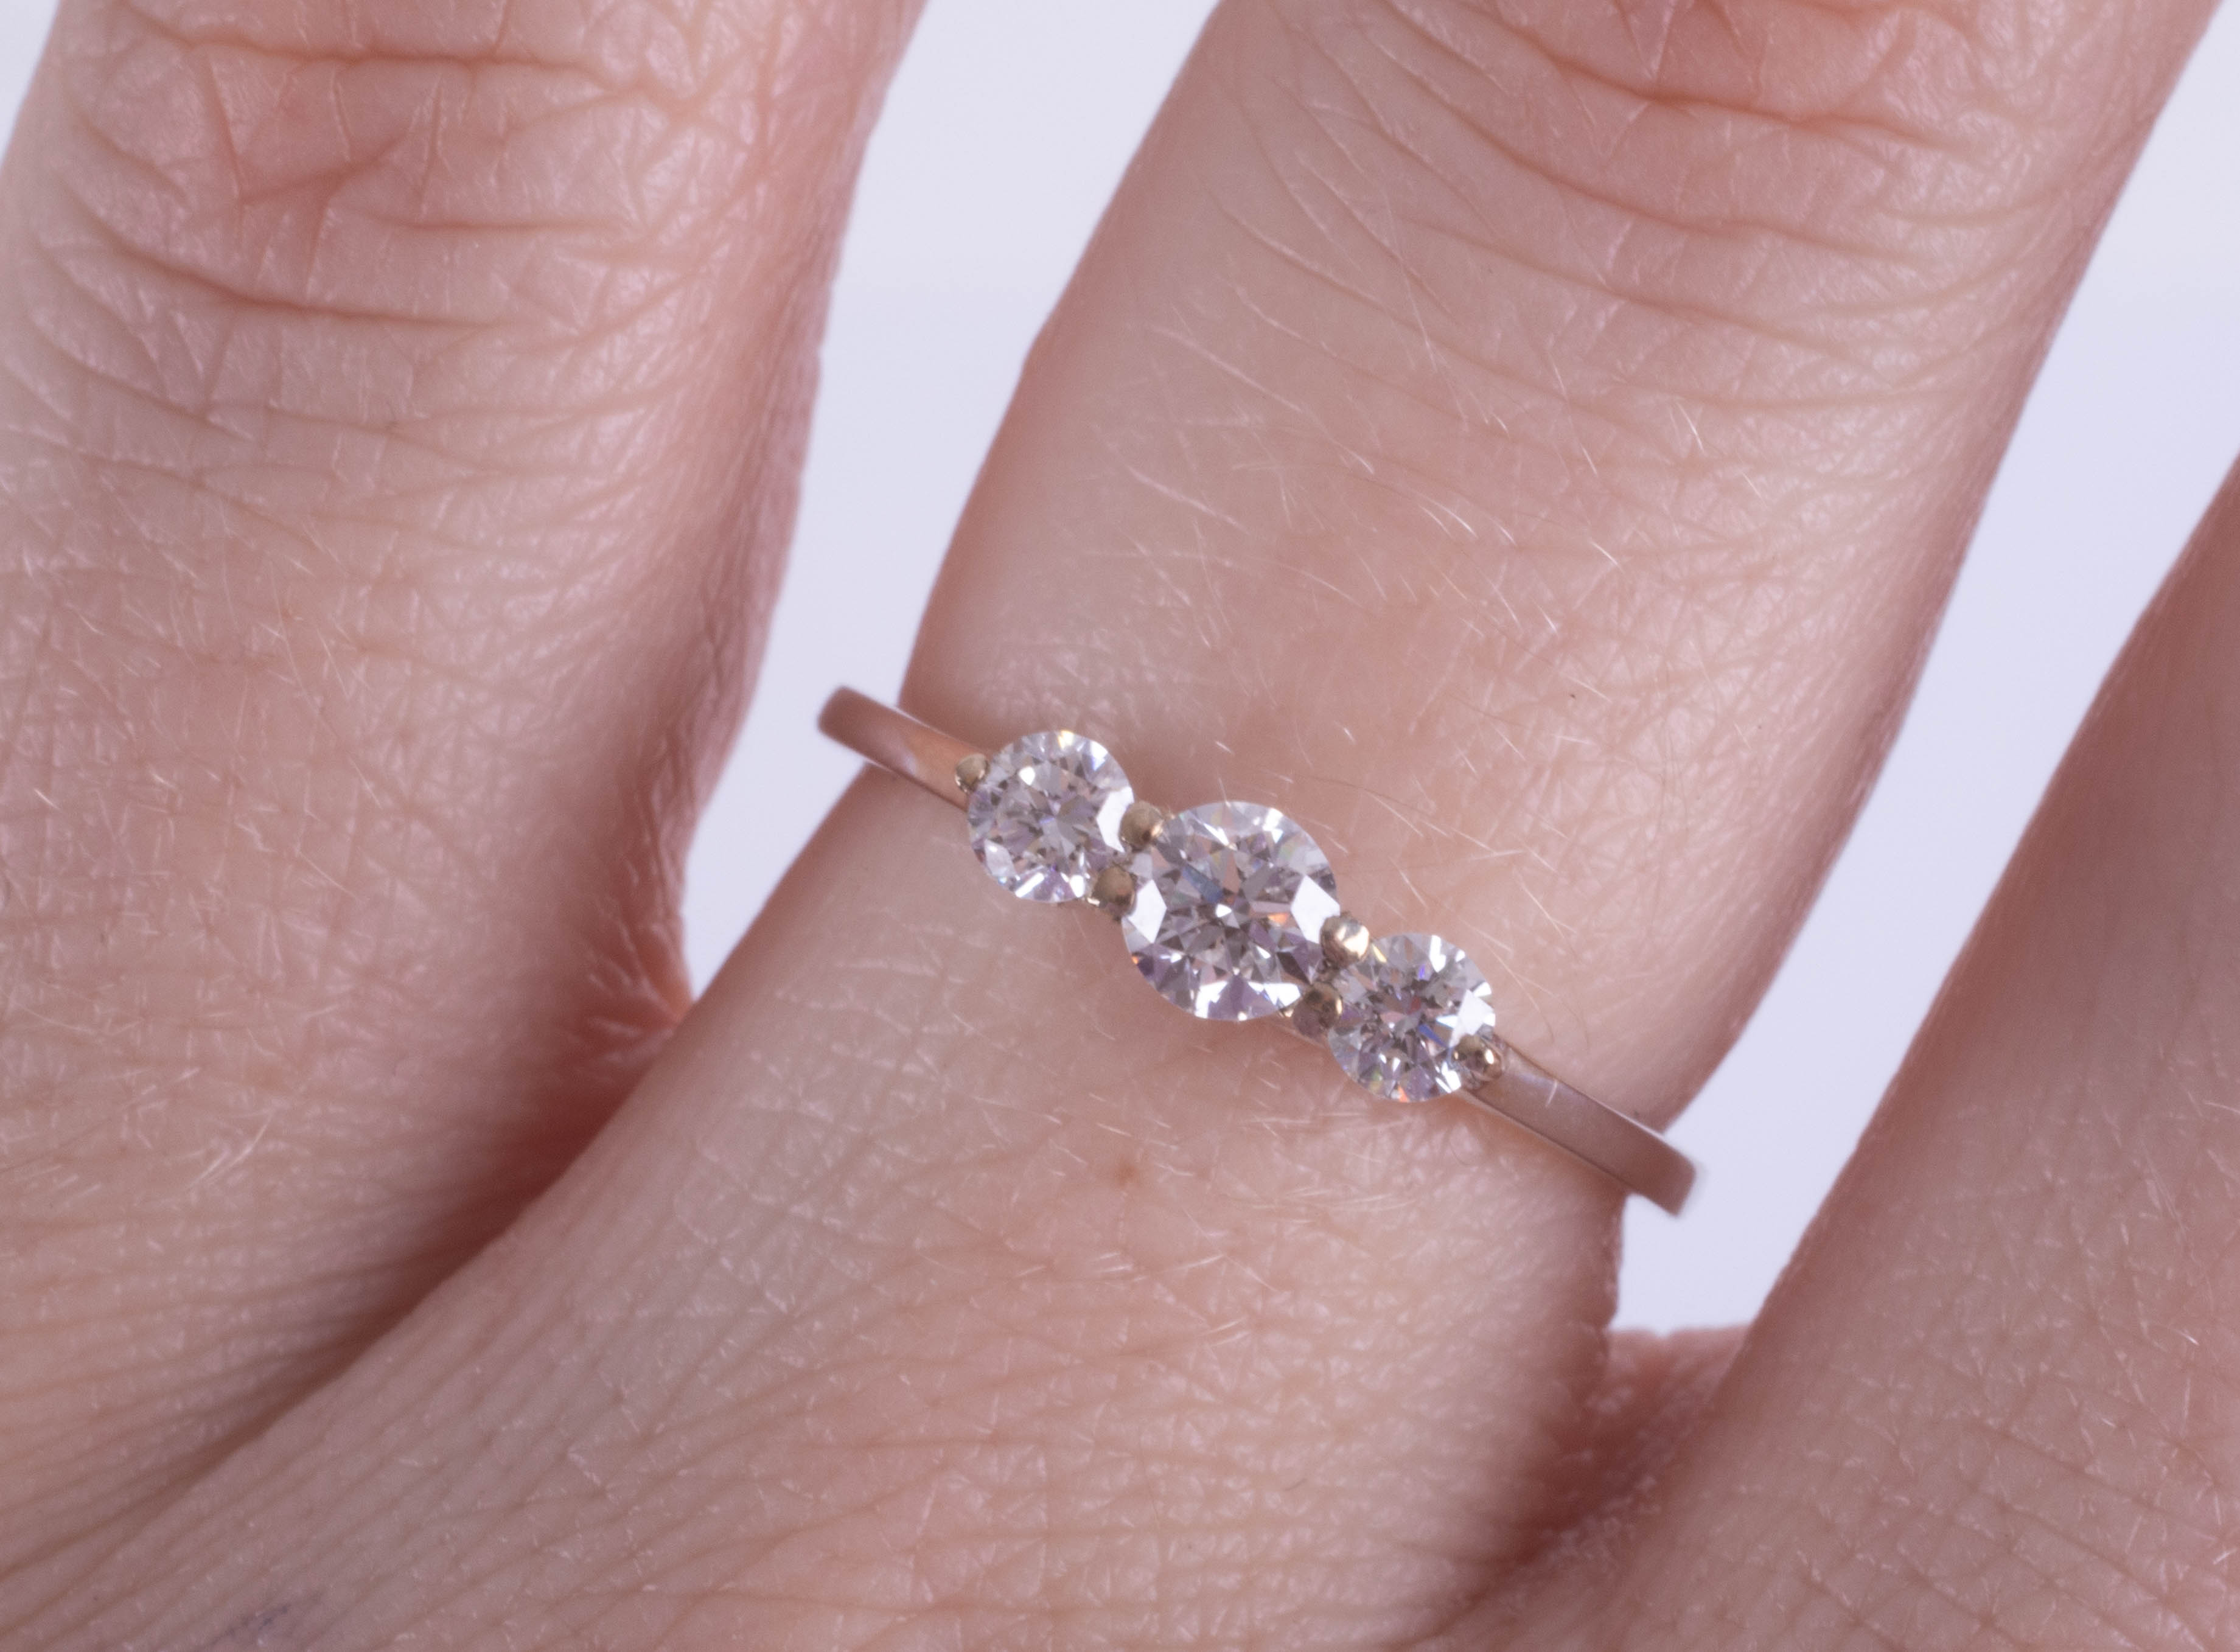 An 18ct white gold trilogy ring, approx. 0.50ct, estimated colour E, clarity SI1, ring size M. - Image 2 of 2